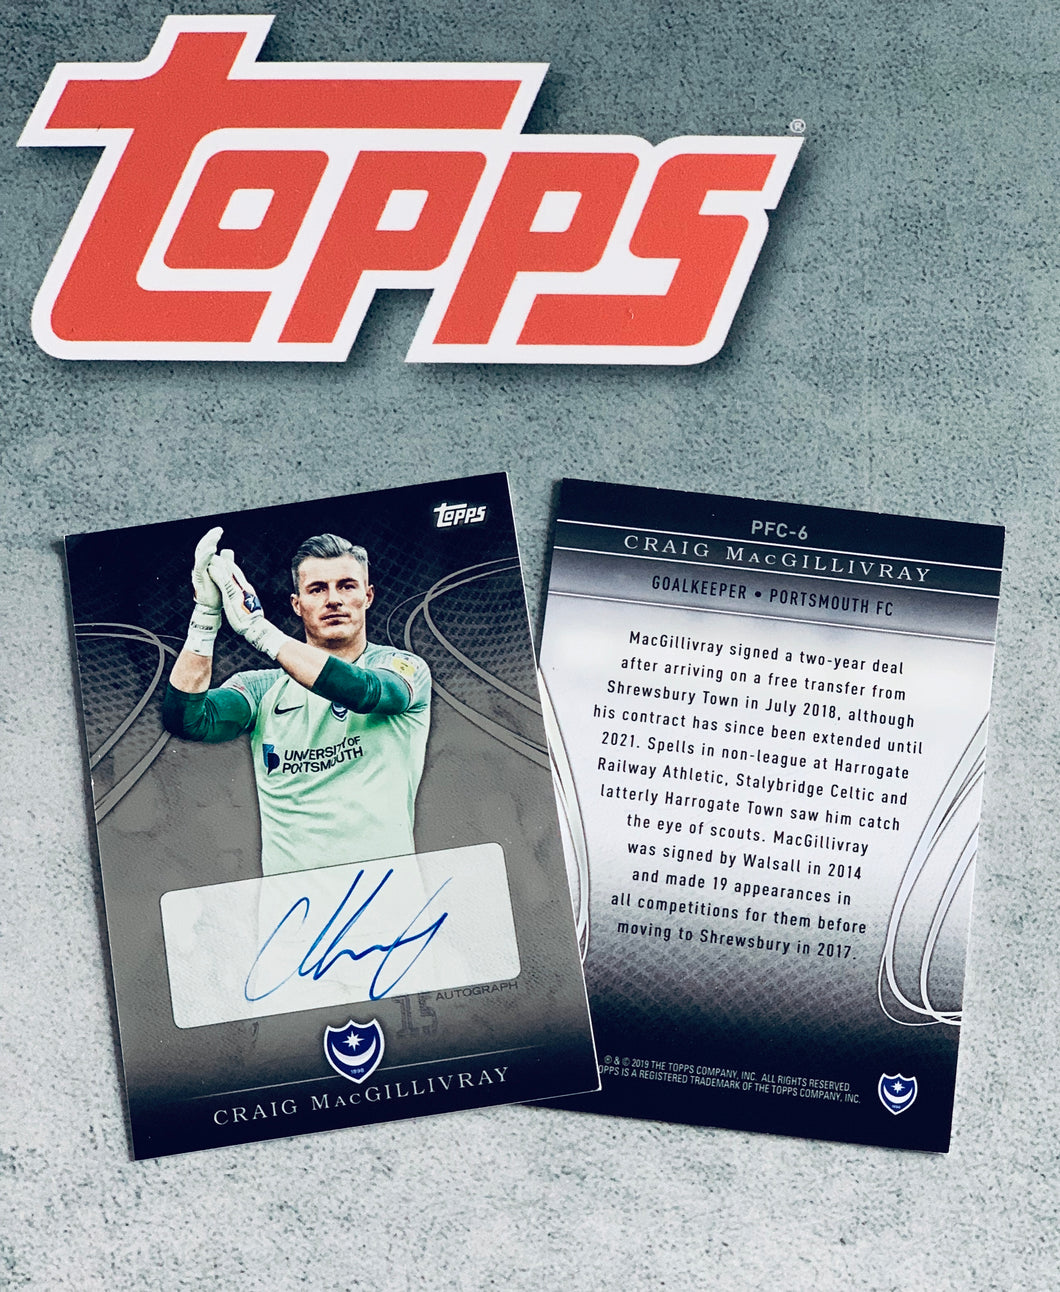 Craig MacGillivray 2018/19 Signed Topps Card